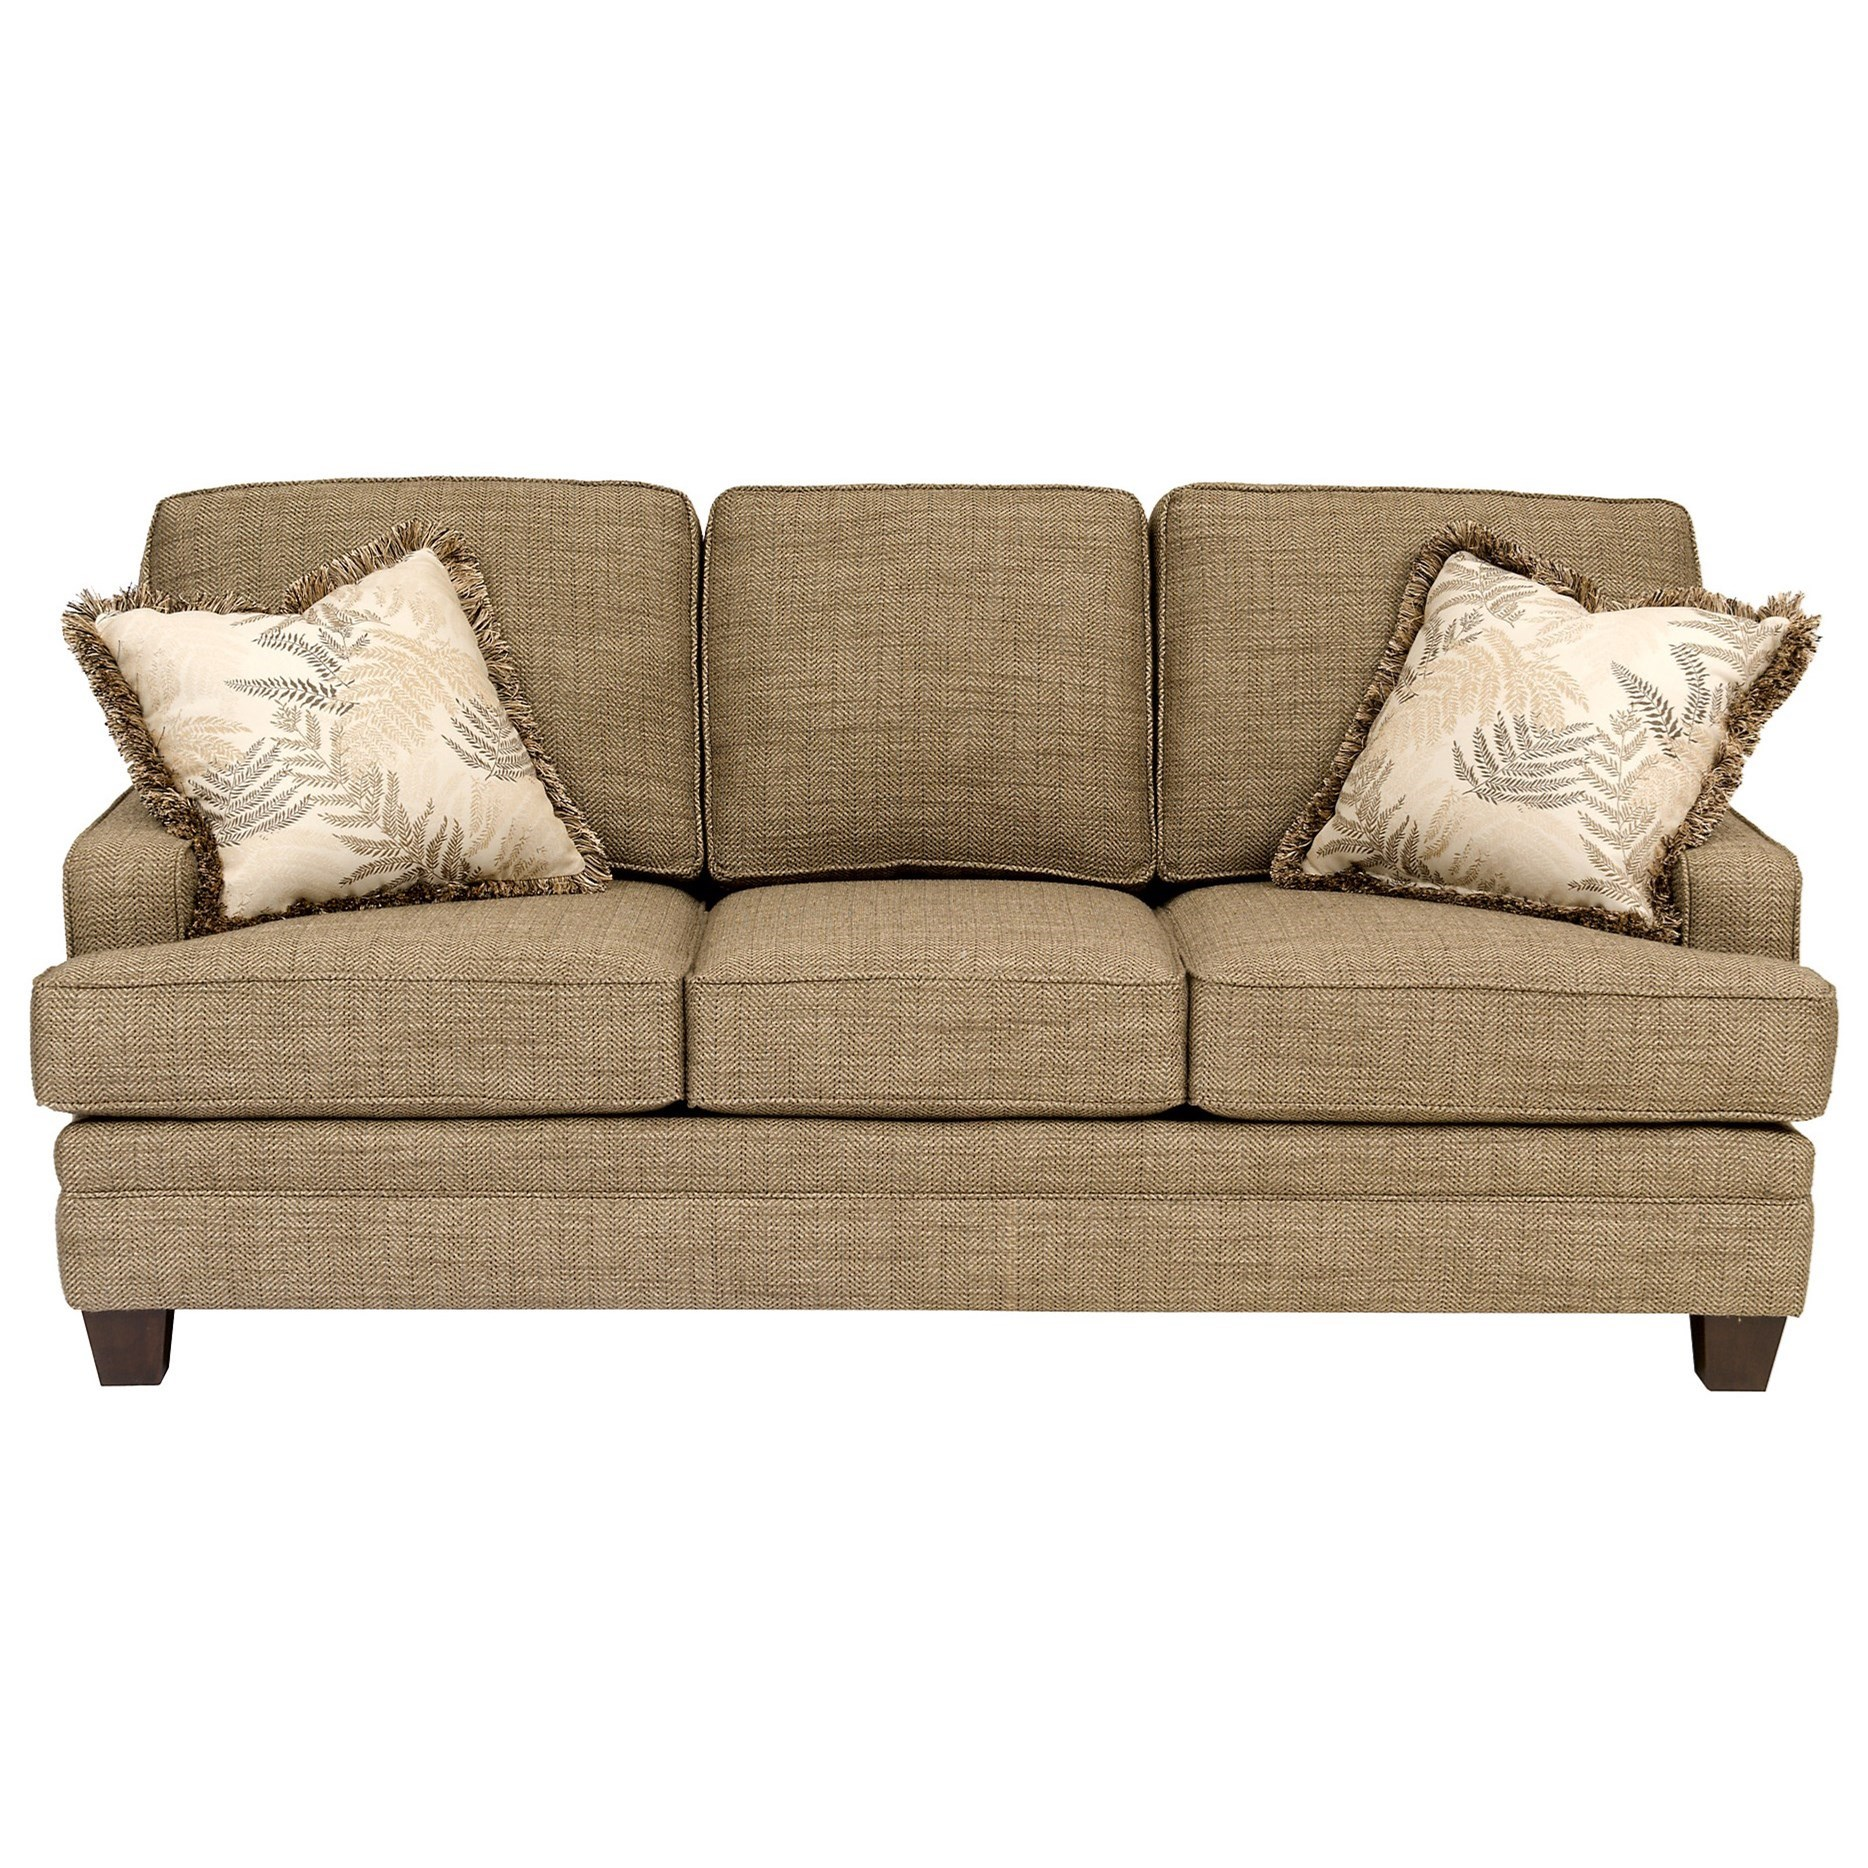 Build Your Own 5000 Series Customizable Sofa by Smith Brothers at Saugerties Furniture Mart